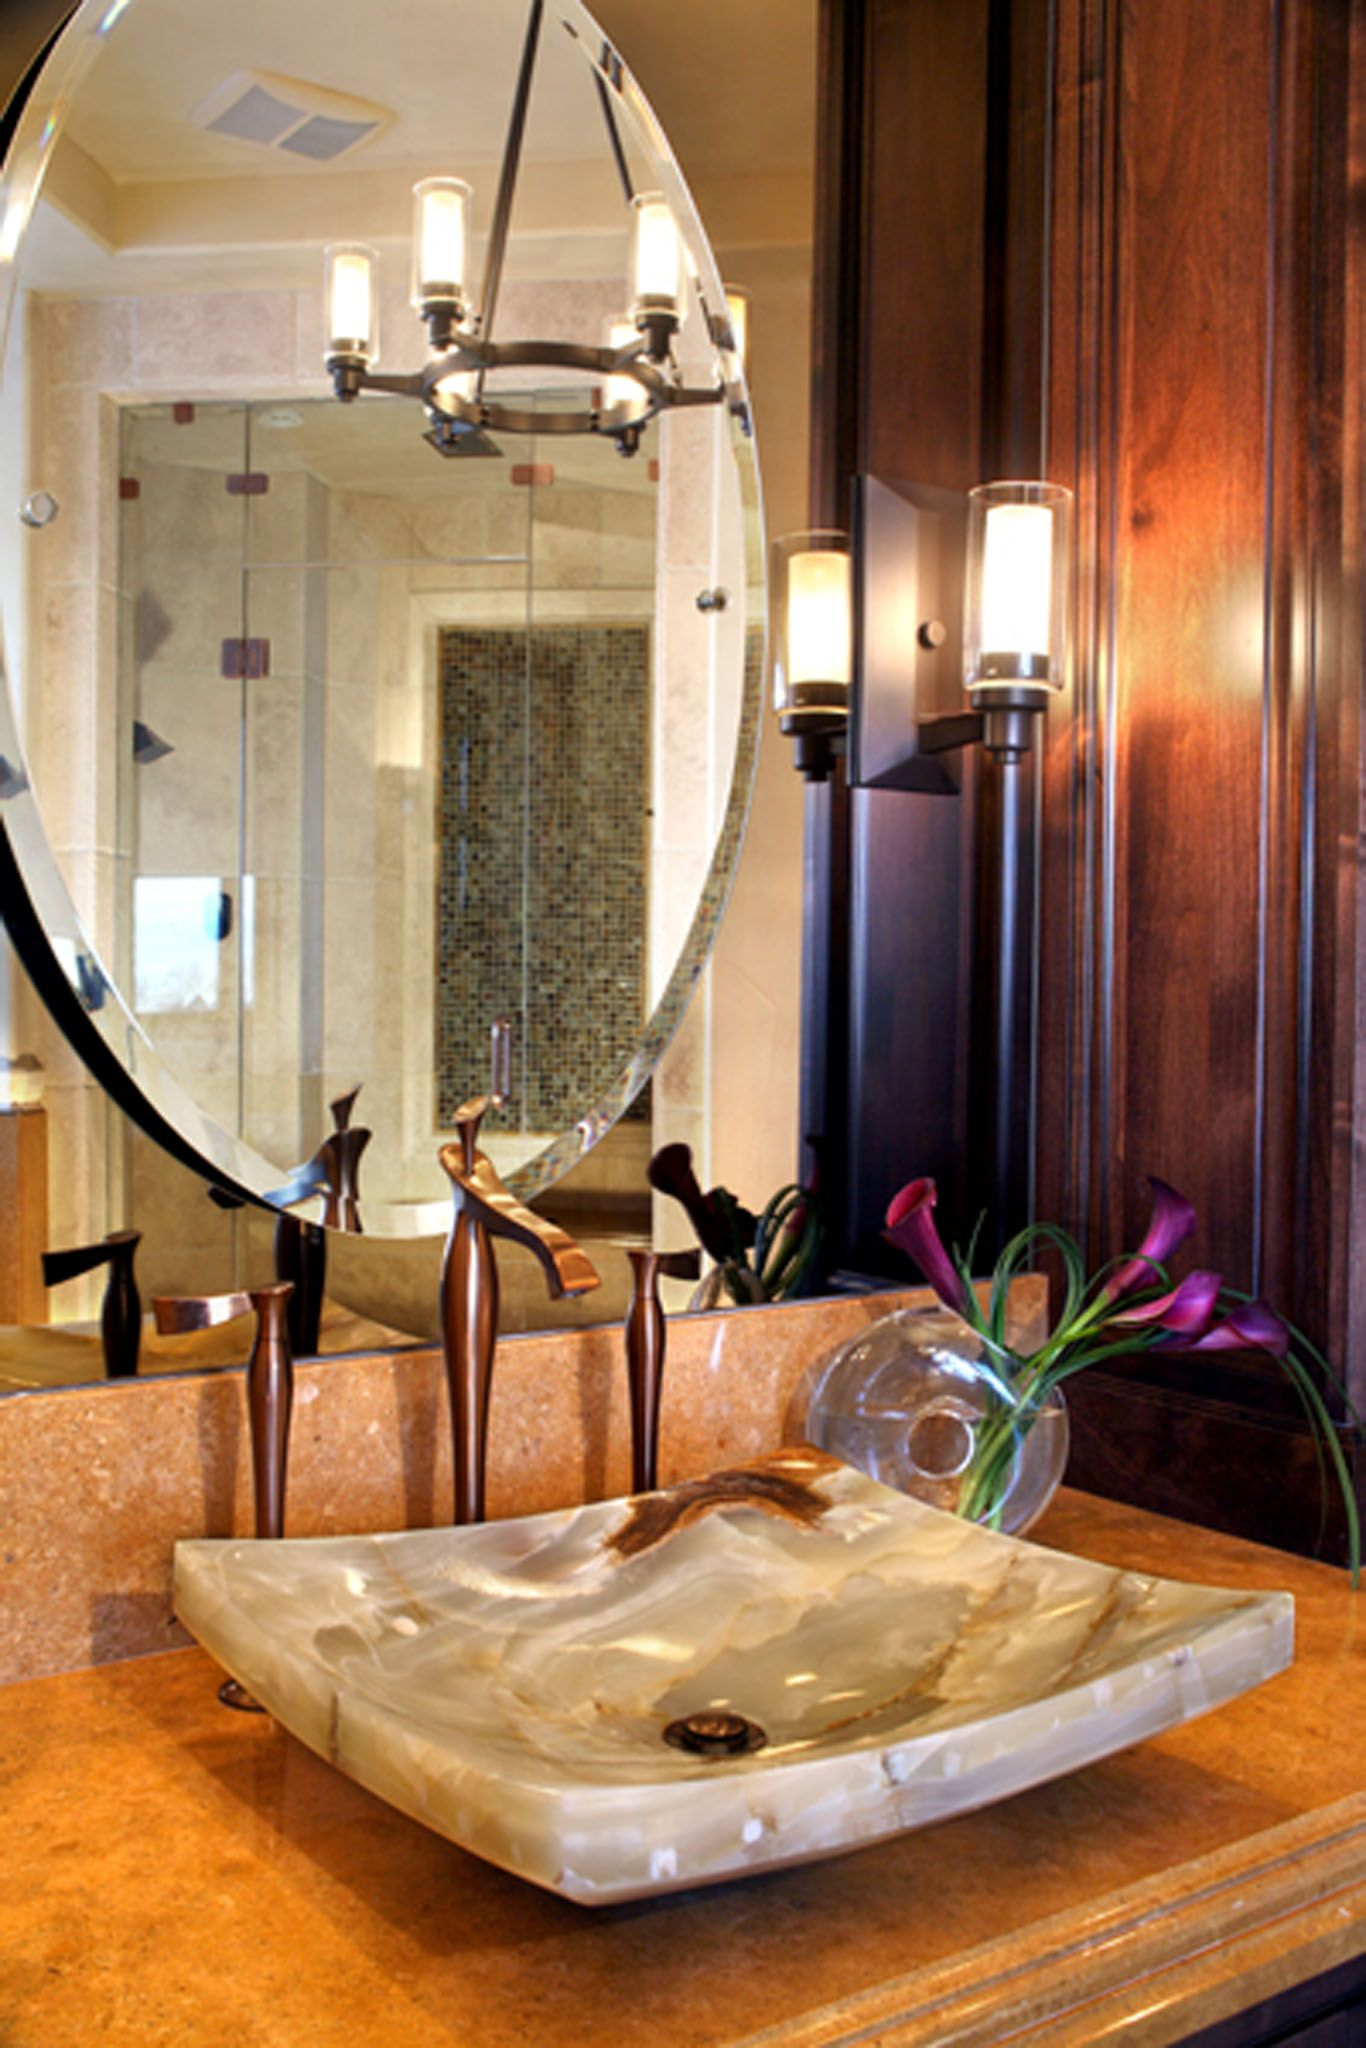 Gallery kitchen and bath projects u stone forest vessels and